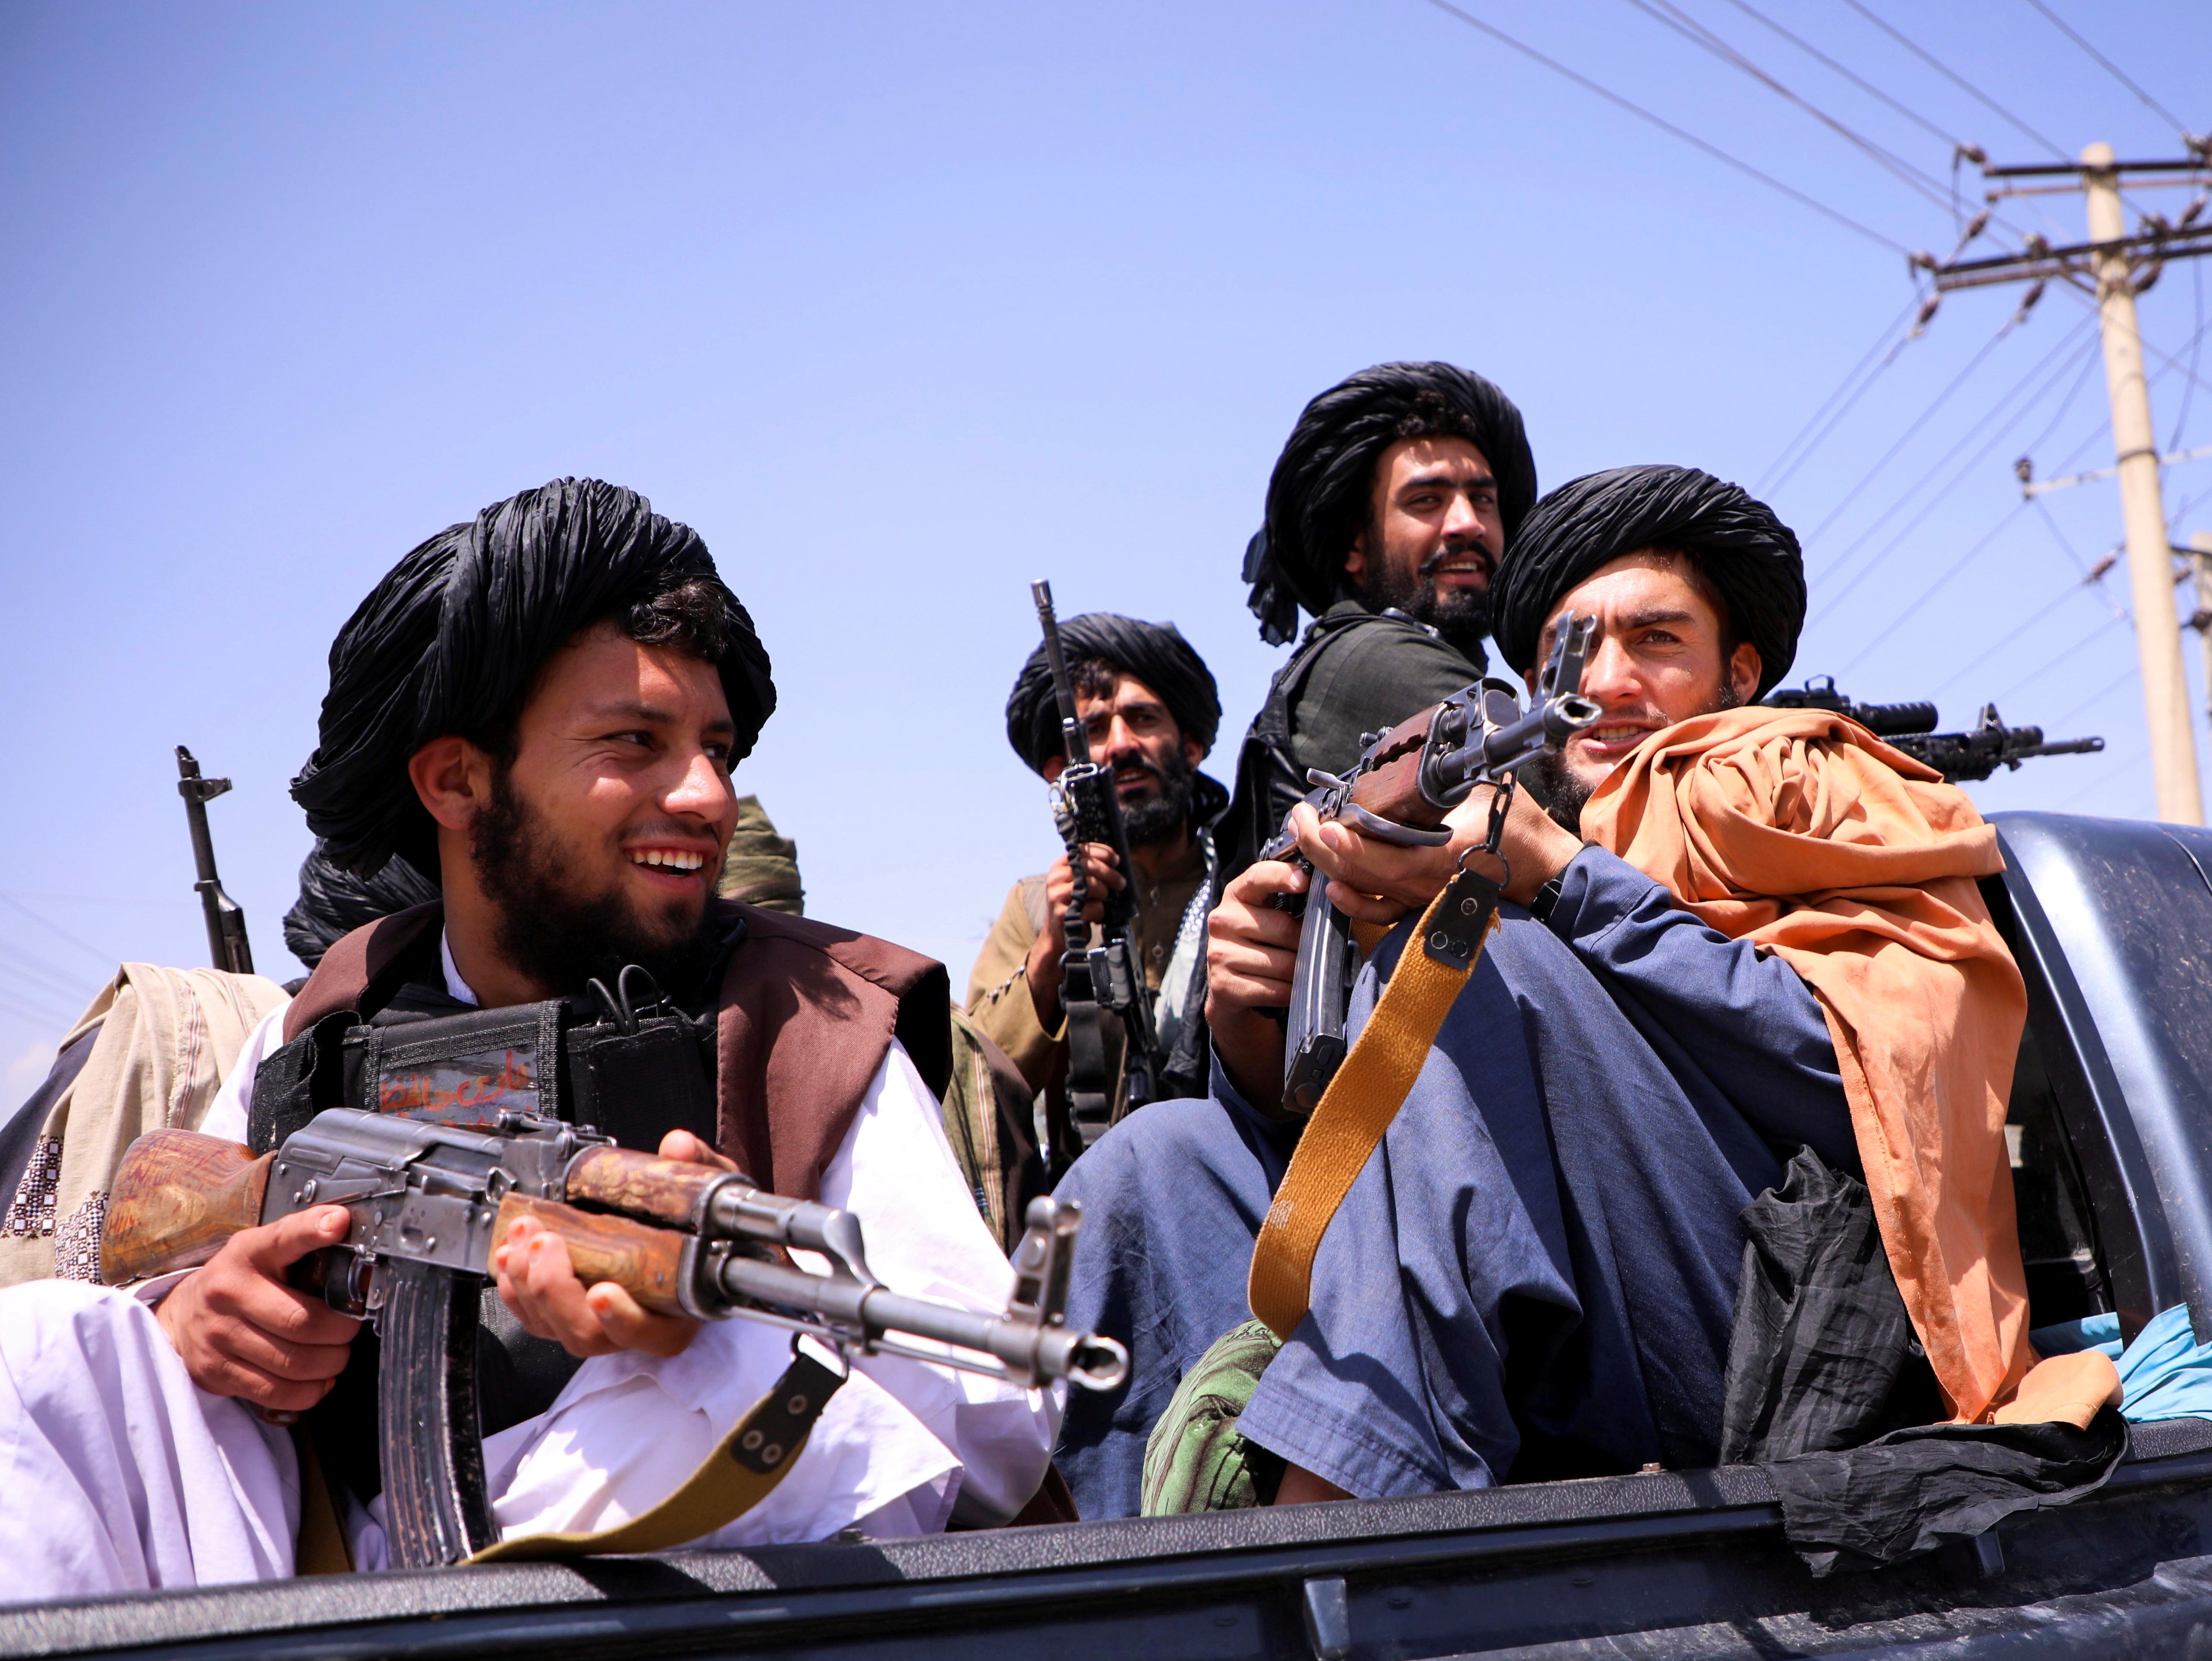 Taliban forces patrol in front of Hamid Karzai International Airport in Kabul, Afghanistan, September 2, 2021. REUTERS/Stringer/File Photo